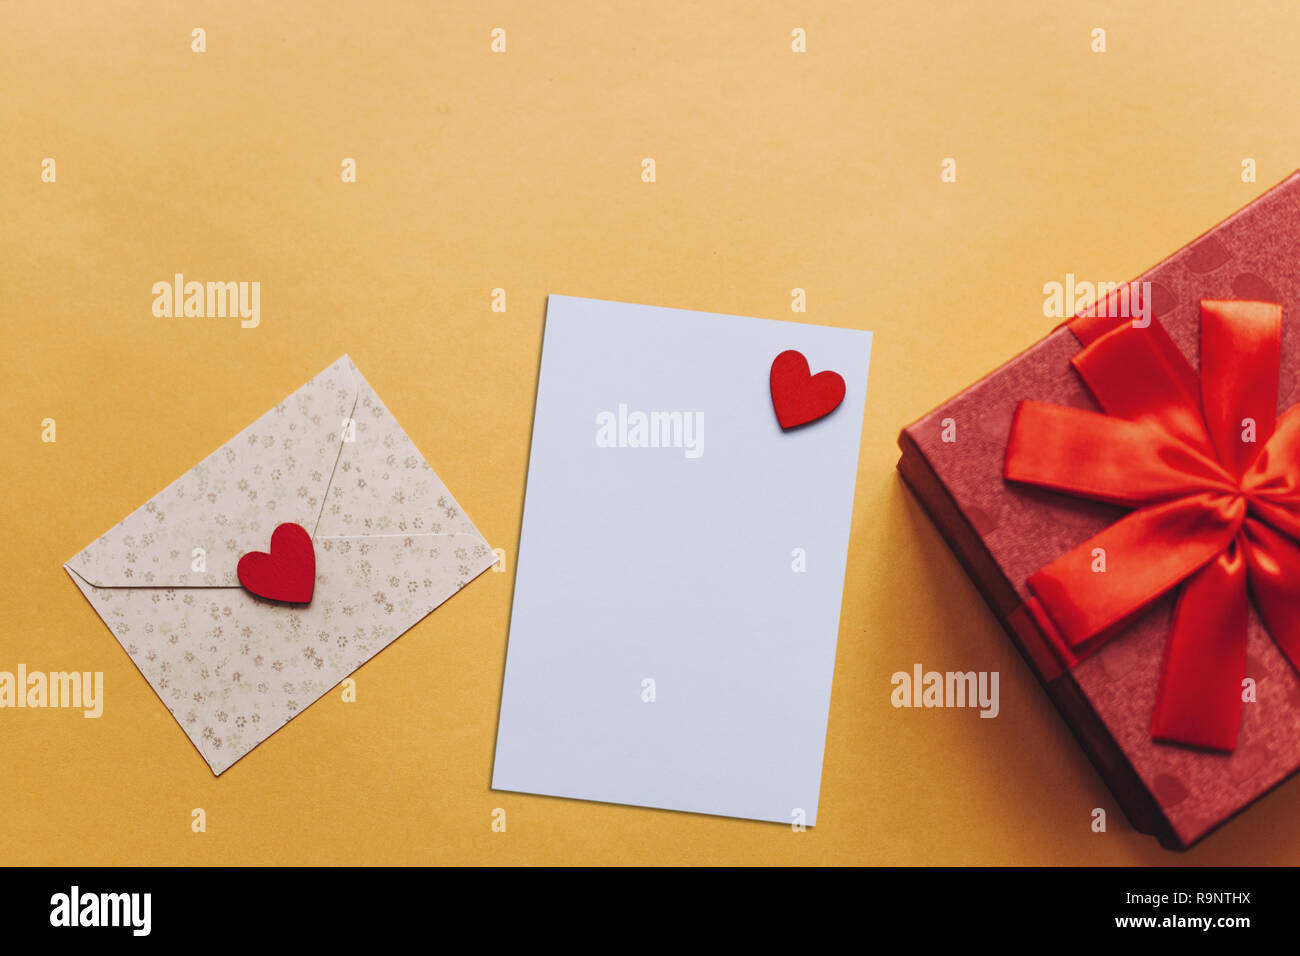 Blank sheet with red heart for text or write. Near an envelope with a heart to send and a box with a gift. Concept for Valentine's Day or Women's Day or Mother's Day. - Stock Image